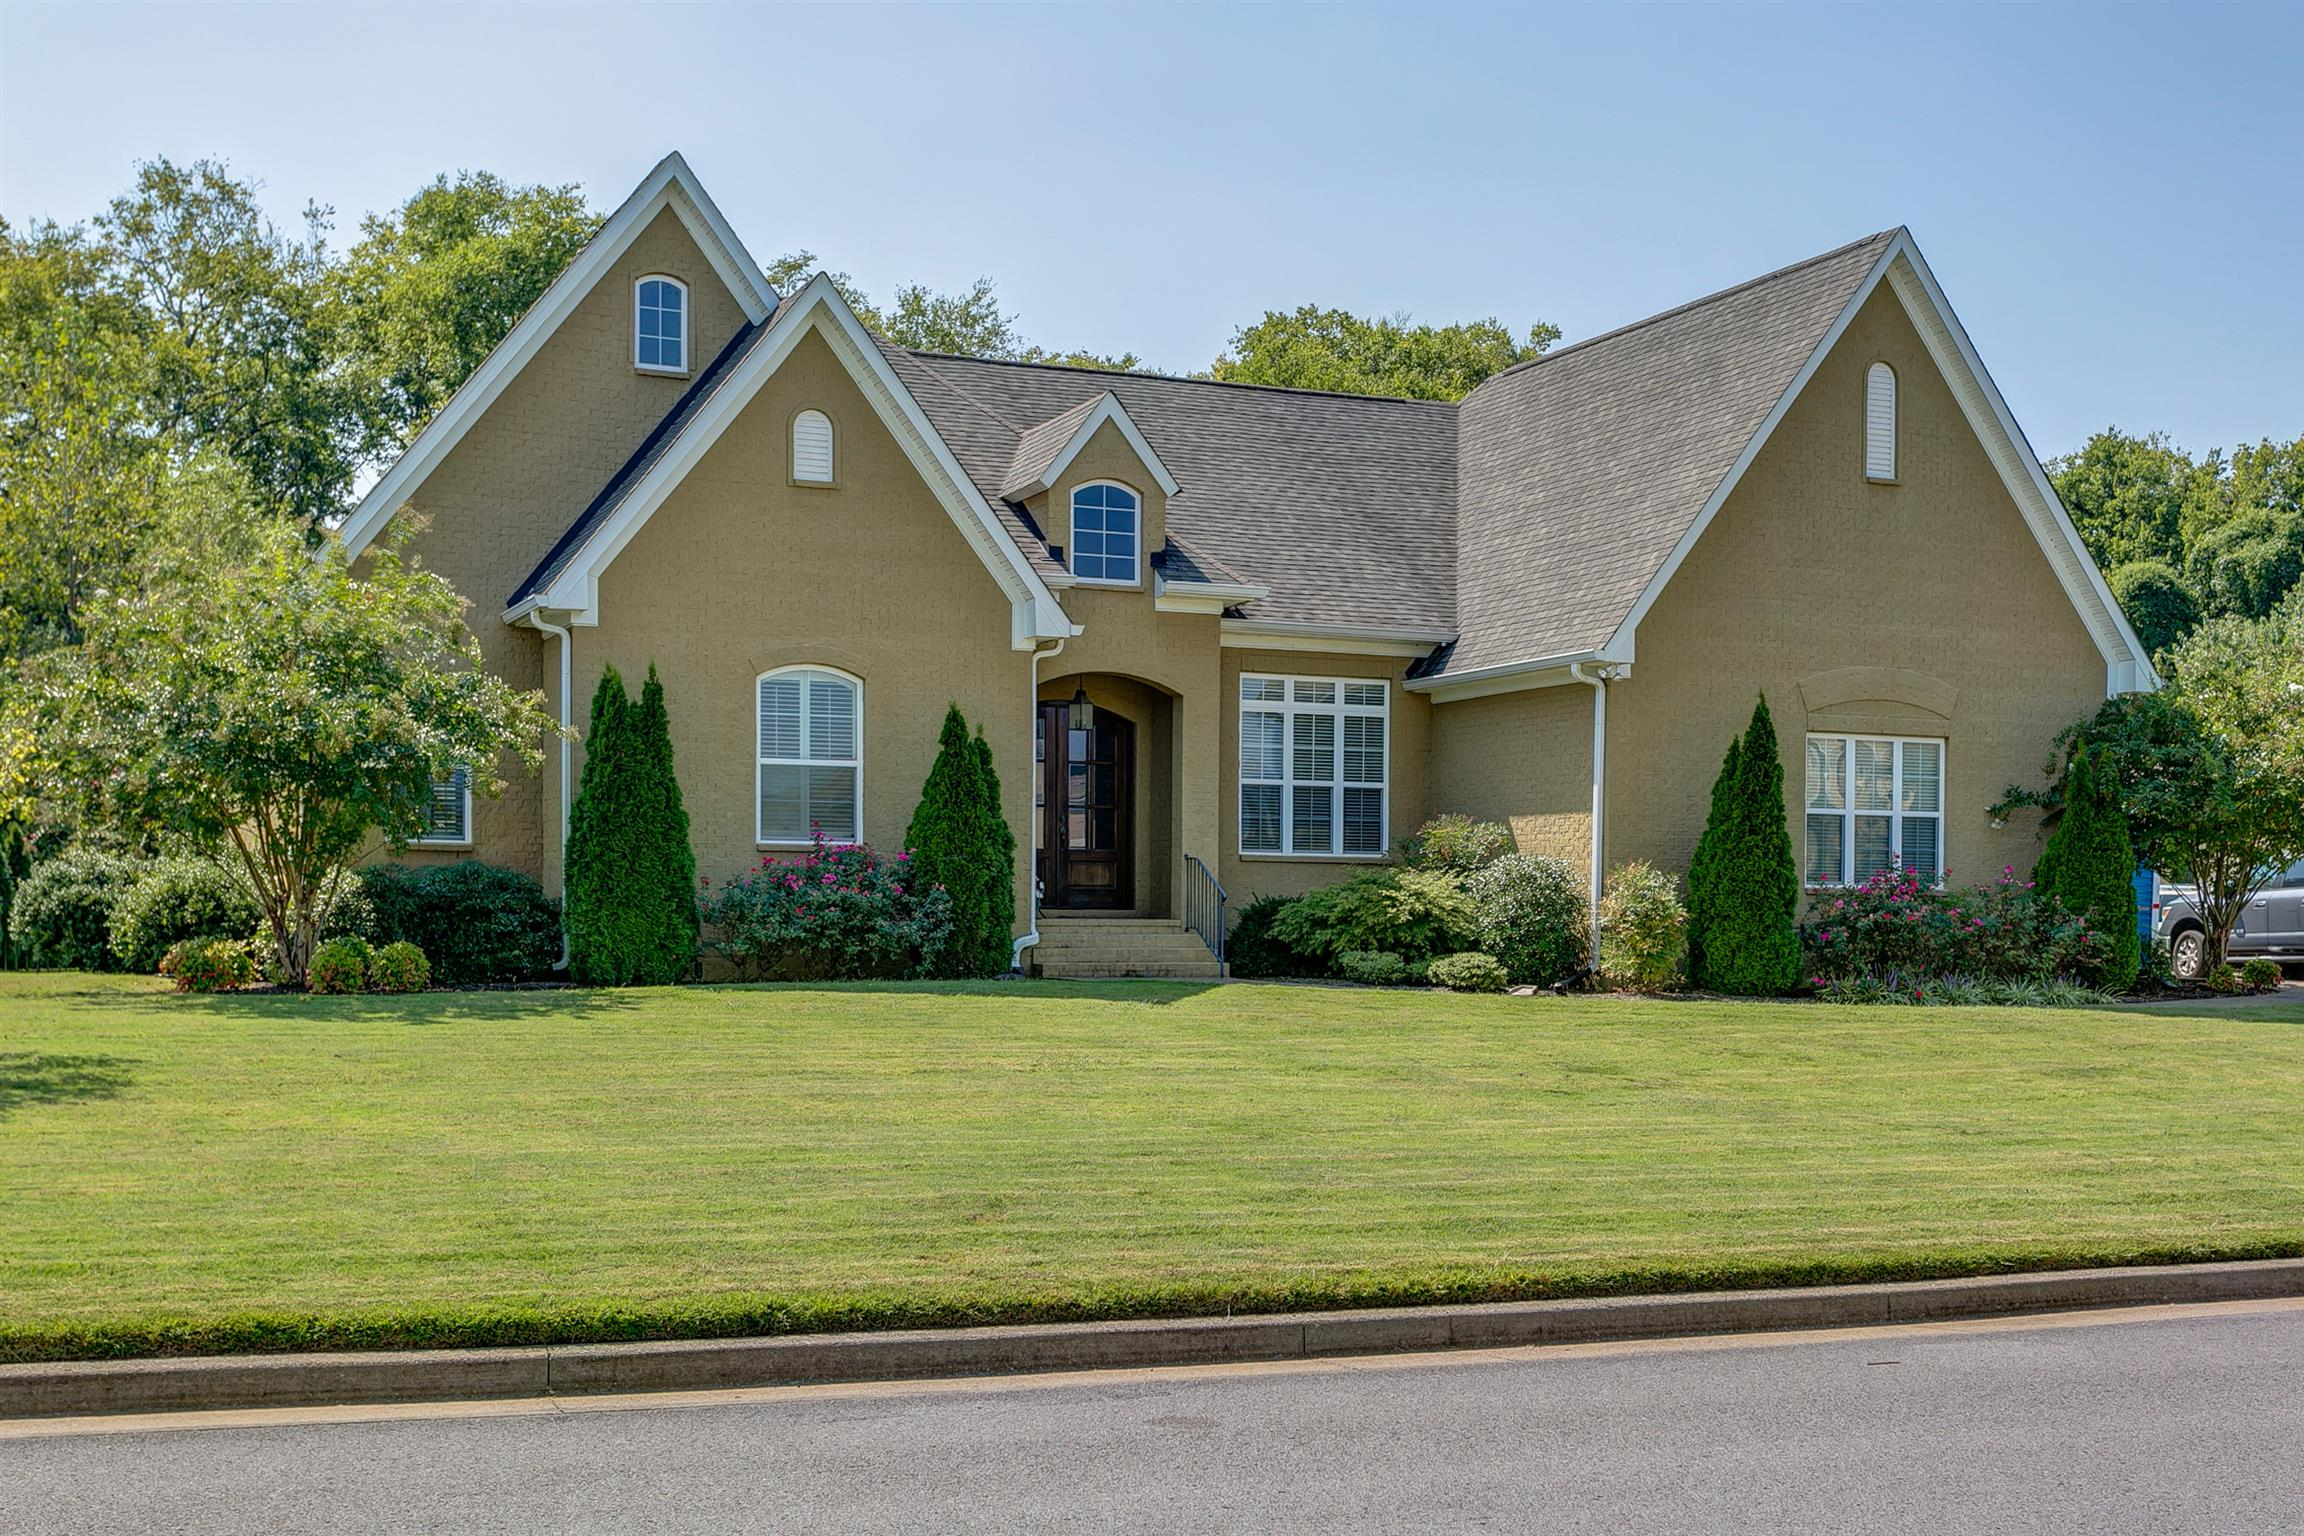 14 Harbor Cove Dr, Old Hickory, TN 37138 - Old Hickory, TN real estate listing